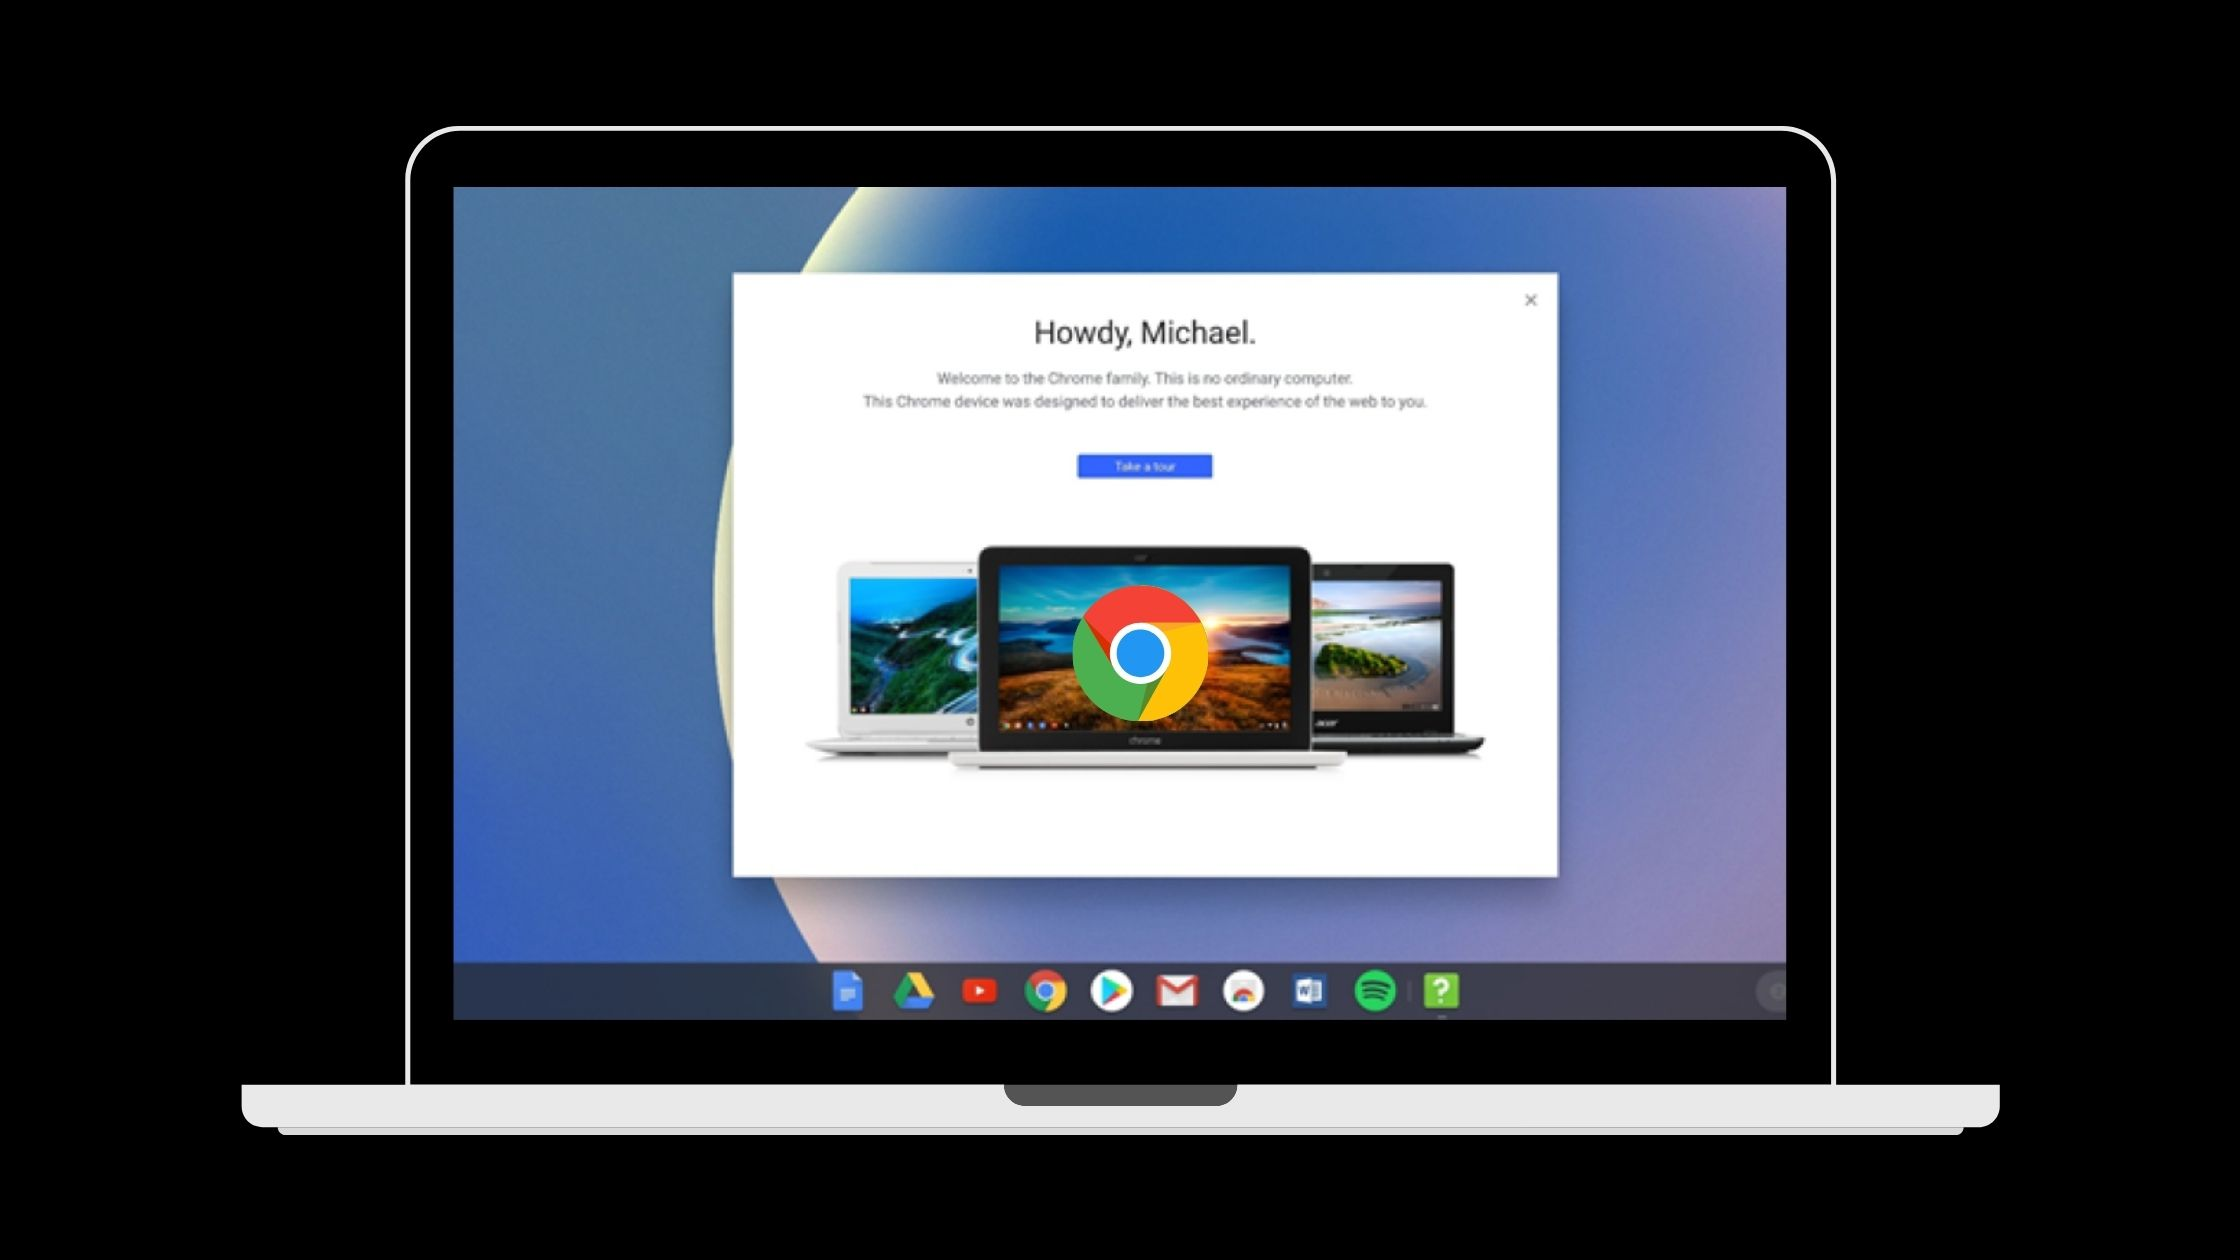 How to Install Chrome OS in PC